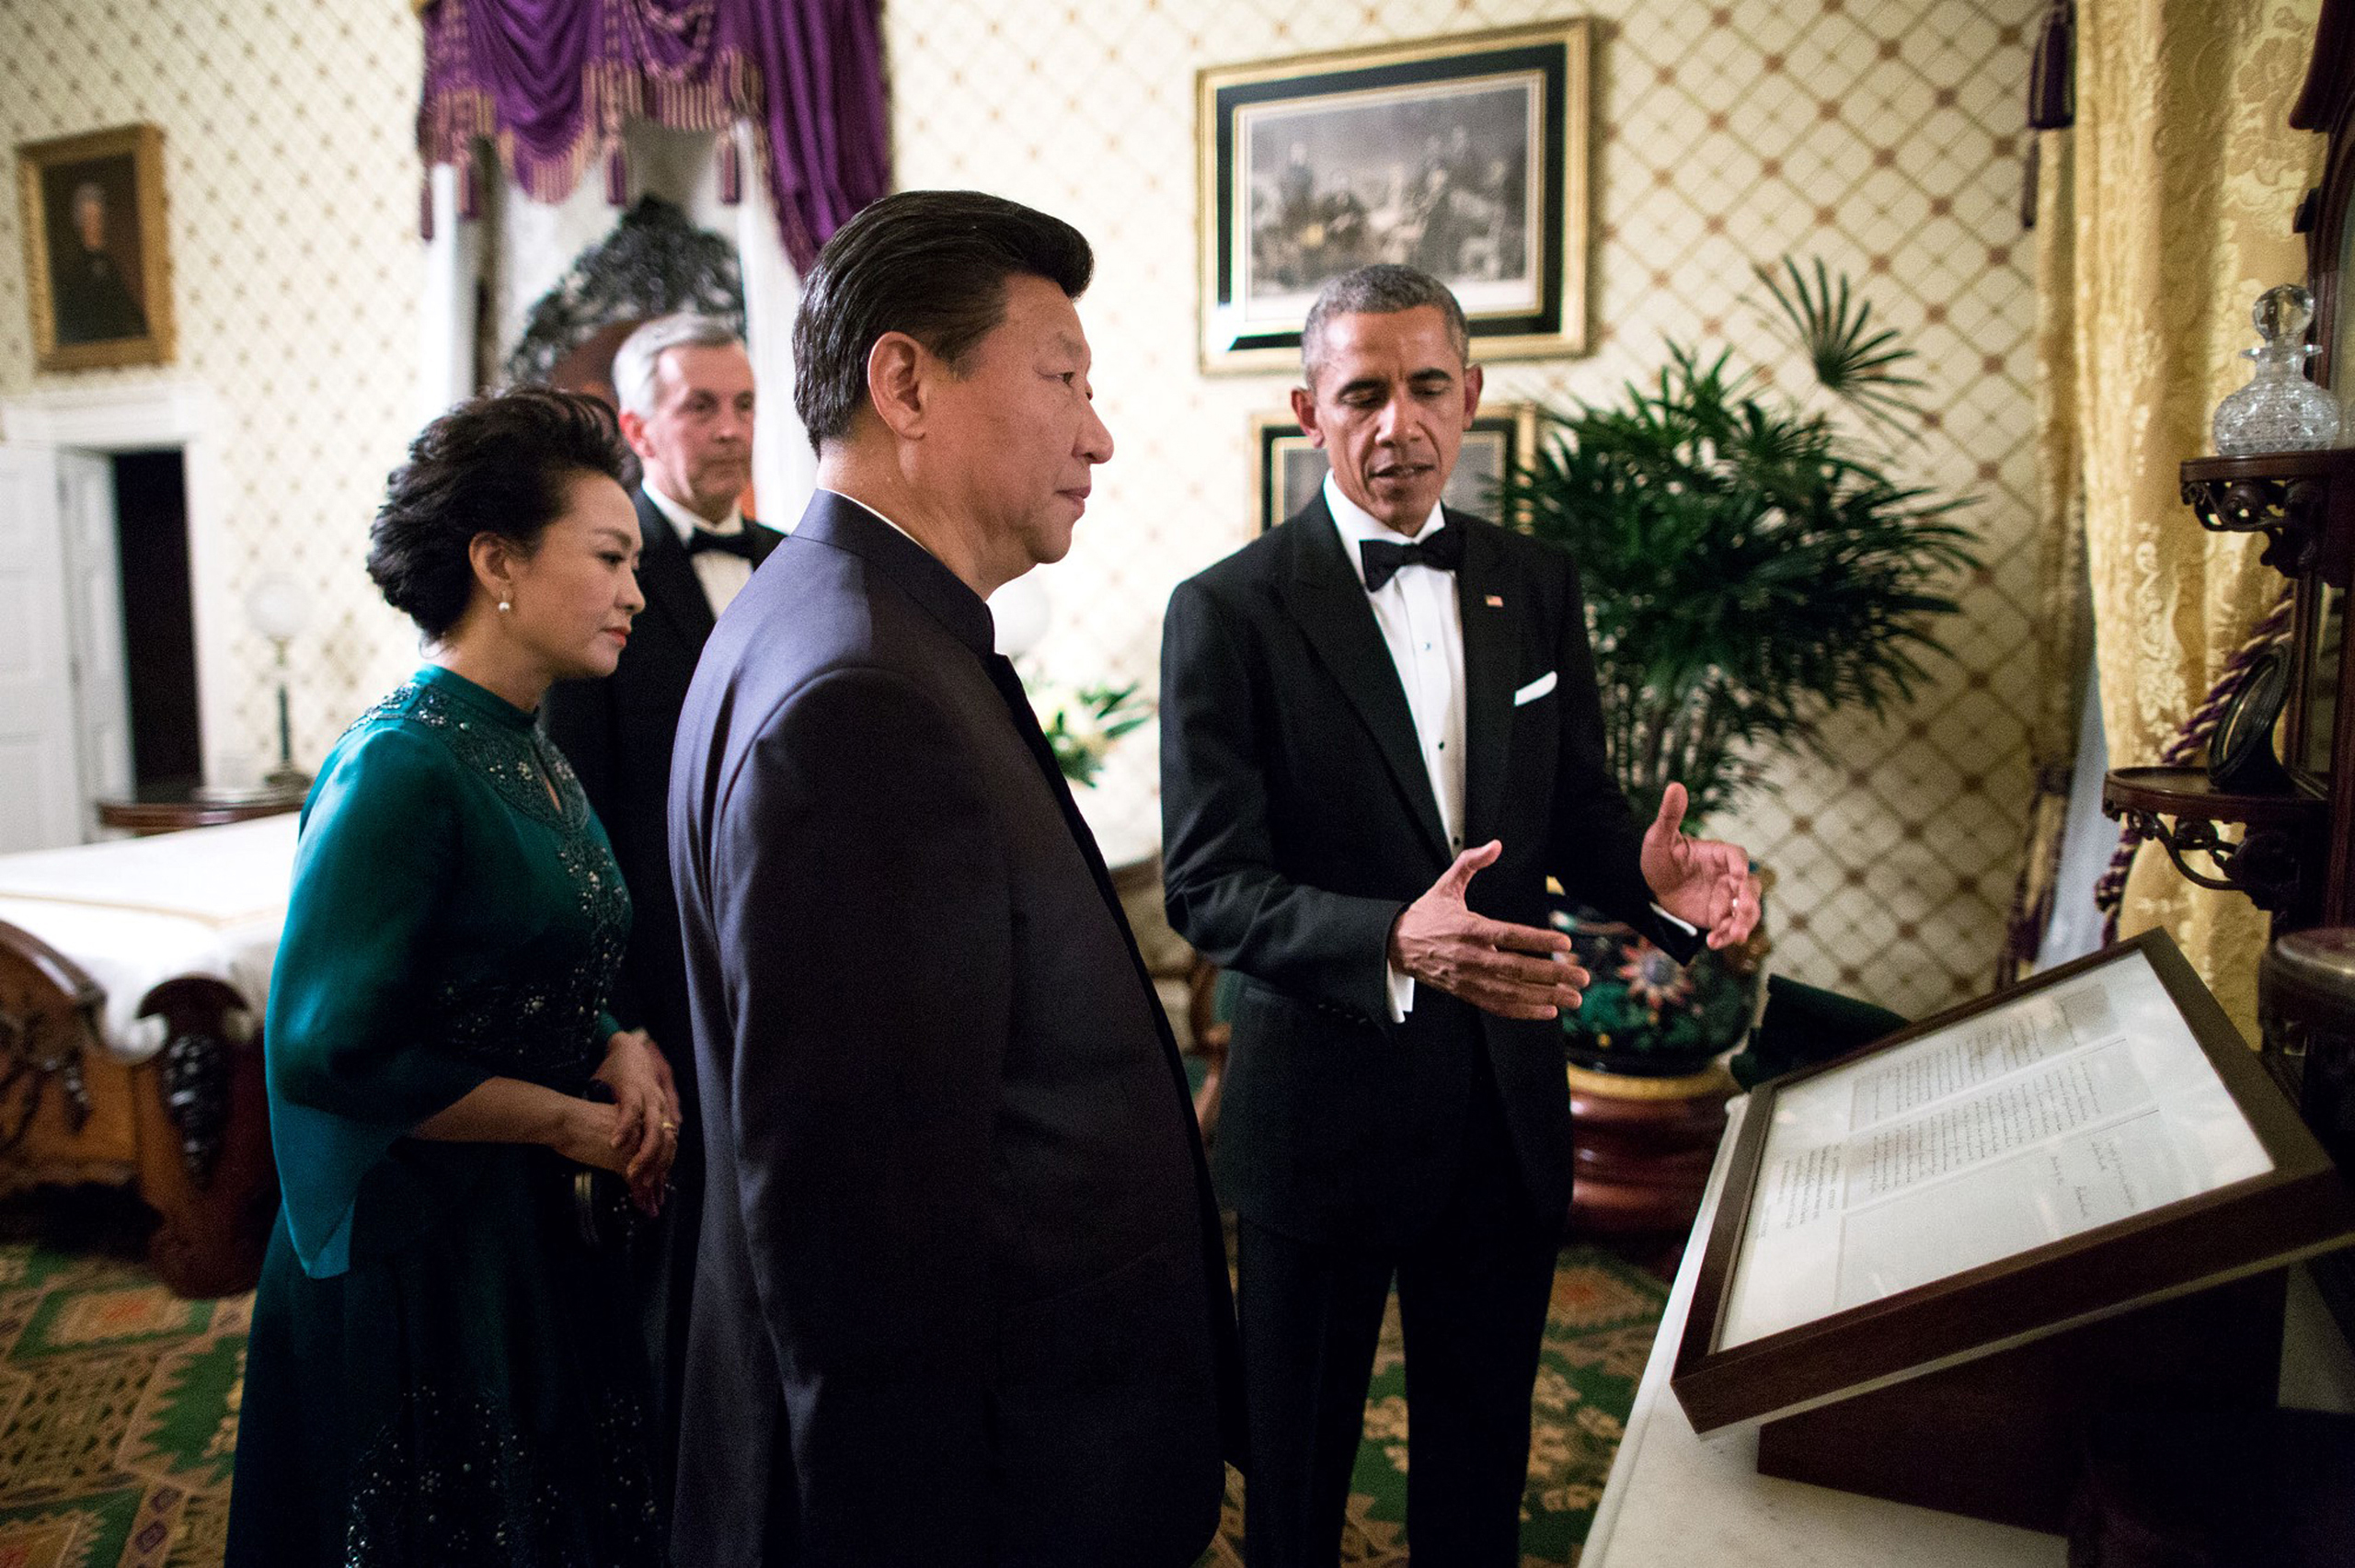 Two days after the visit of Pope Francis, the President and First Lady hosted President Xi Jinping of China and Madame Peng Liyuan for another State Visit. Before the formal State Dinner, the President showed President Xi and Madame Peng the Gettysburg Address in the Lincoln Bedroom,  Sept. 25, 2015.